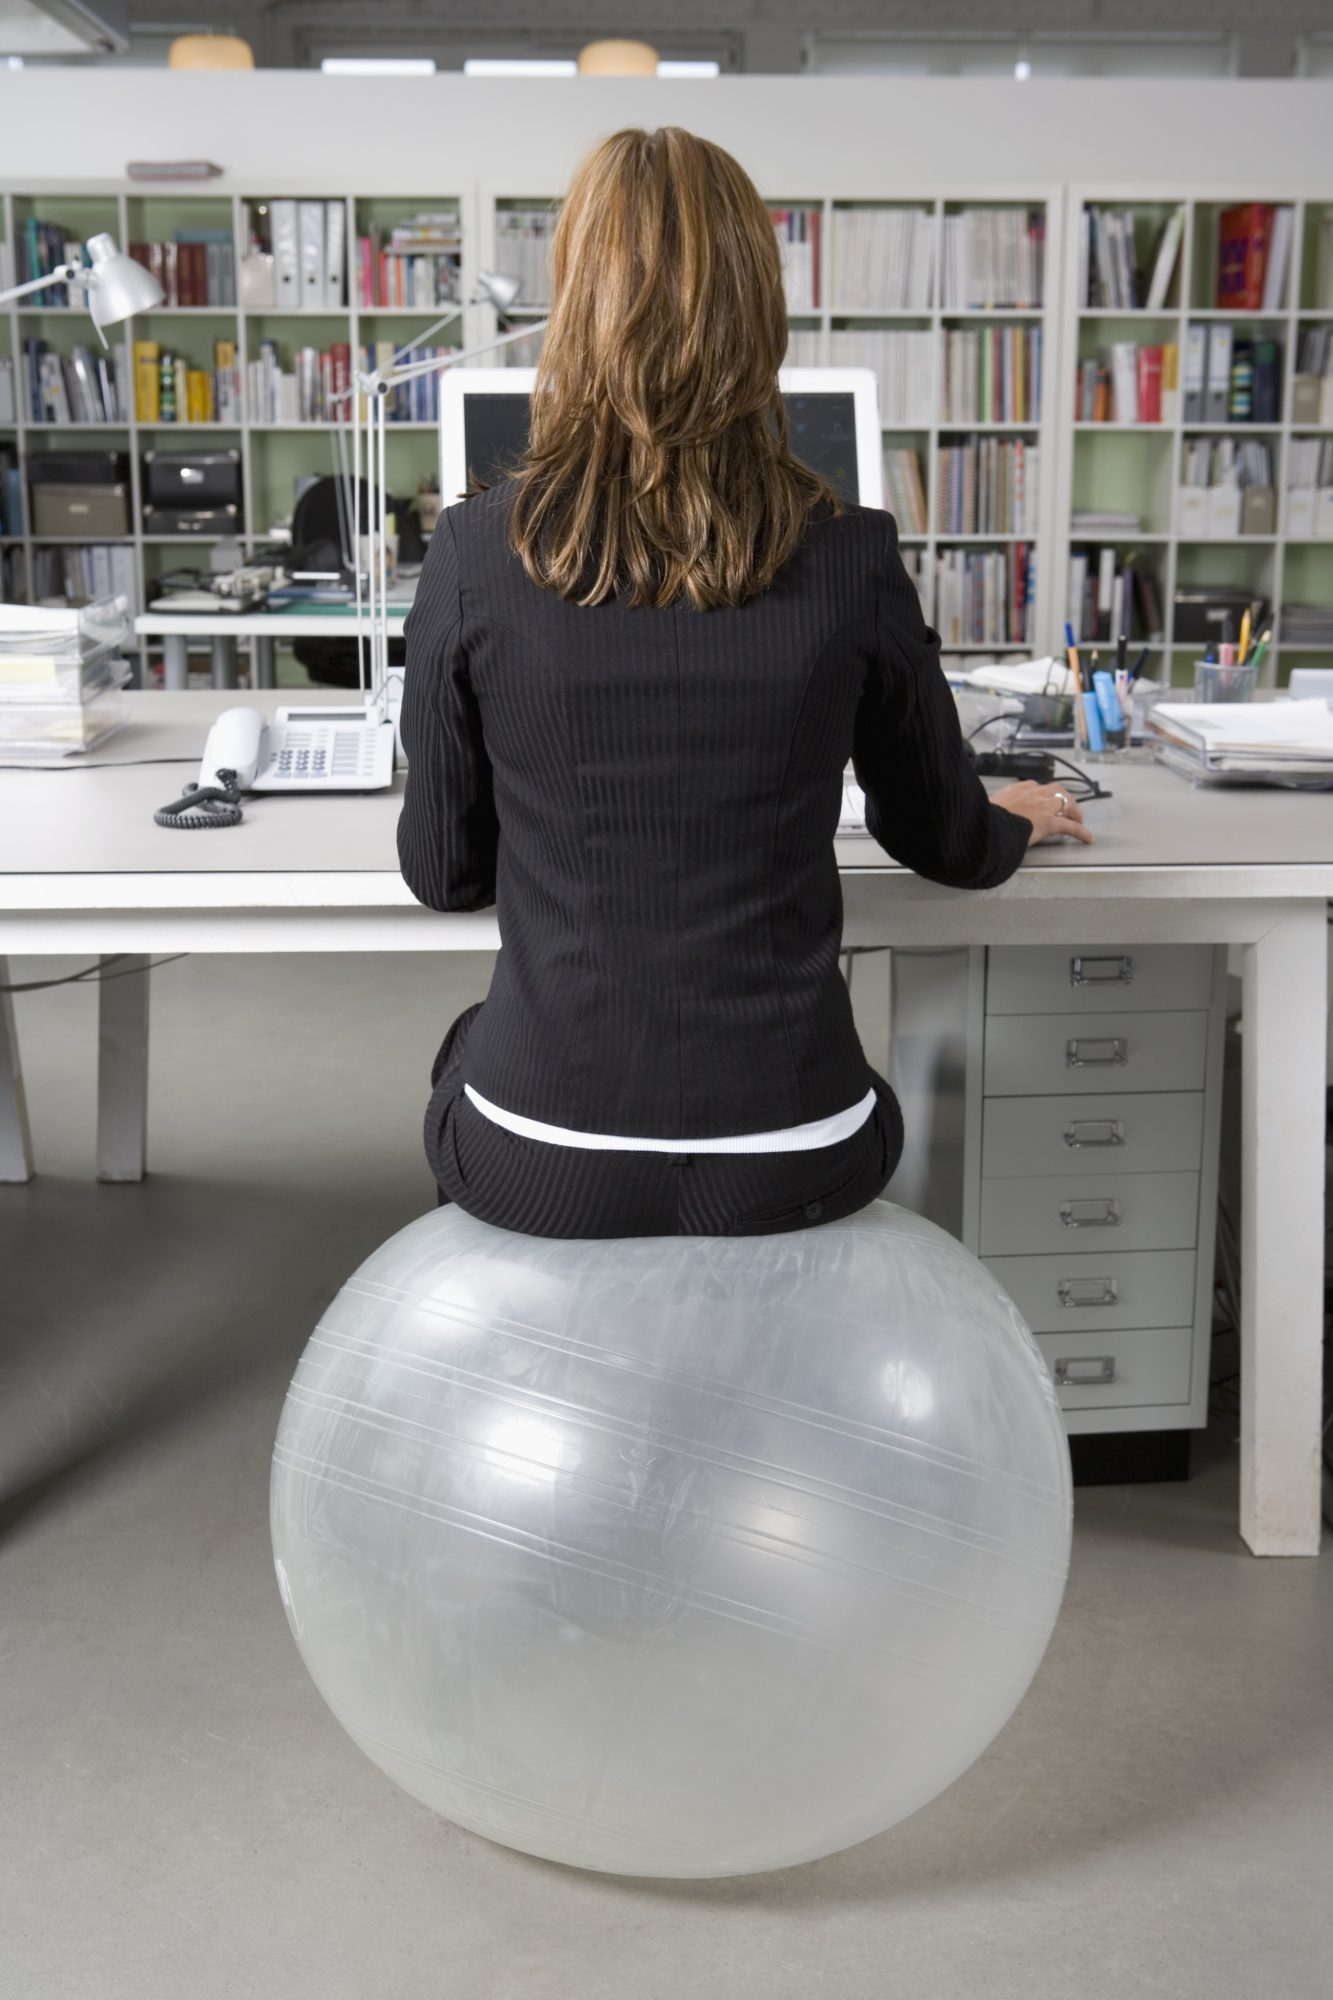 The swap: A desk chair for a fitness ball